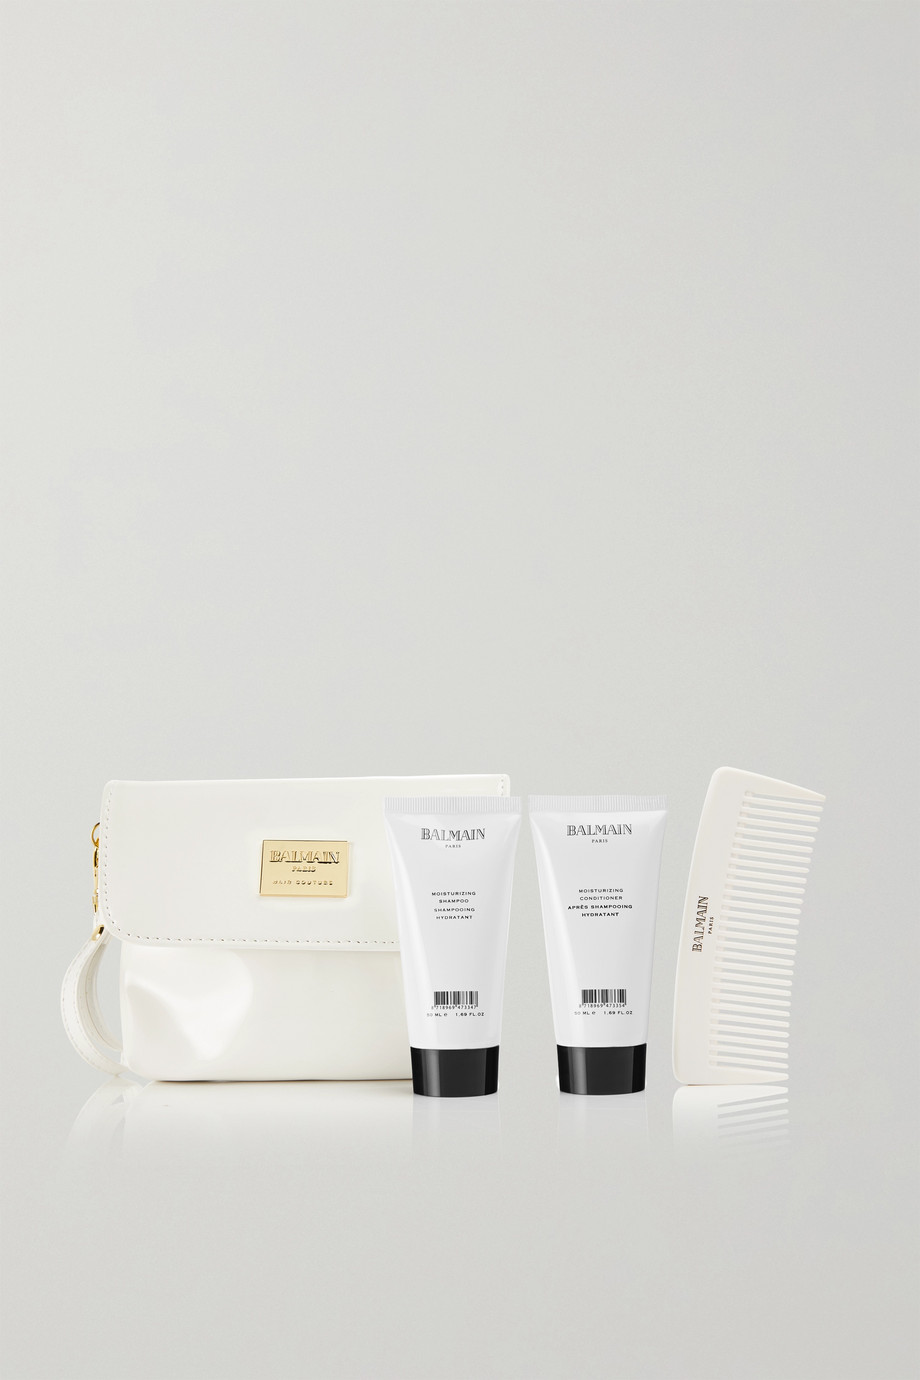 BALMAIN PARIS HAIR COUTURE Hair Care Gift Set